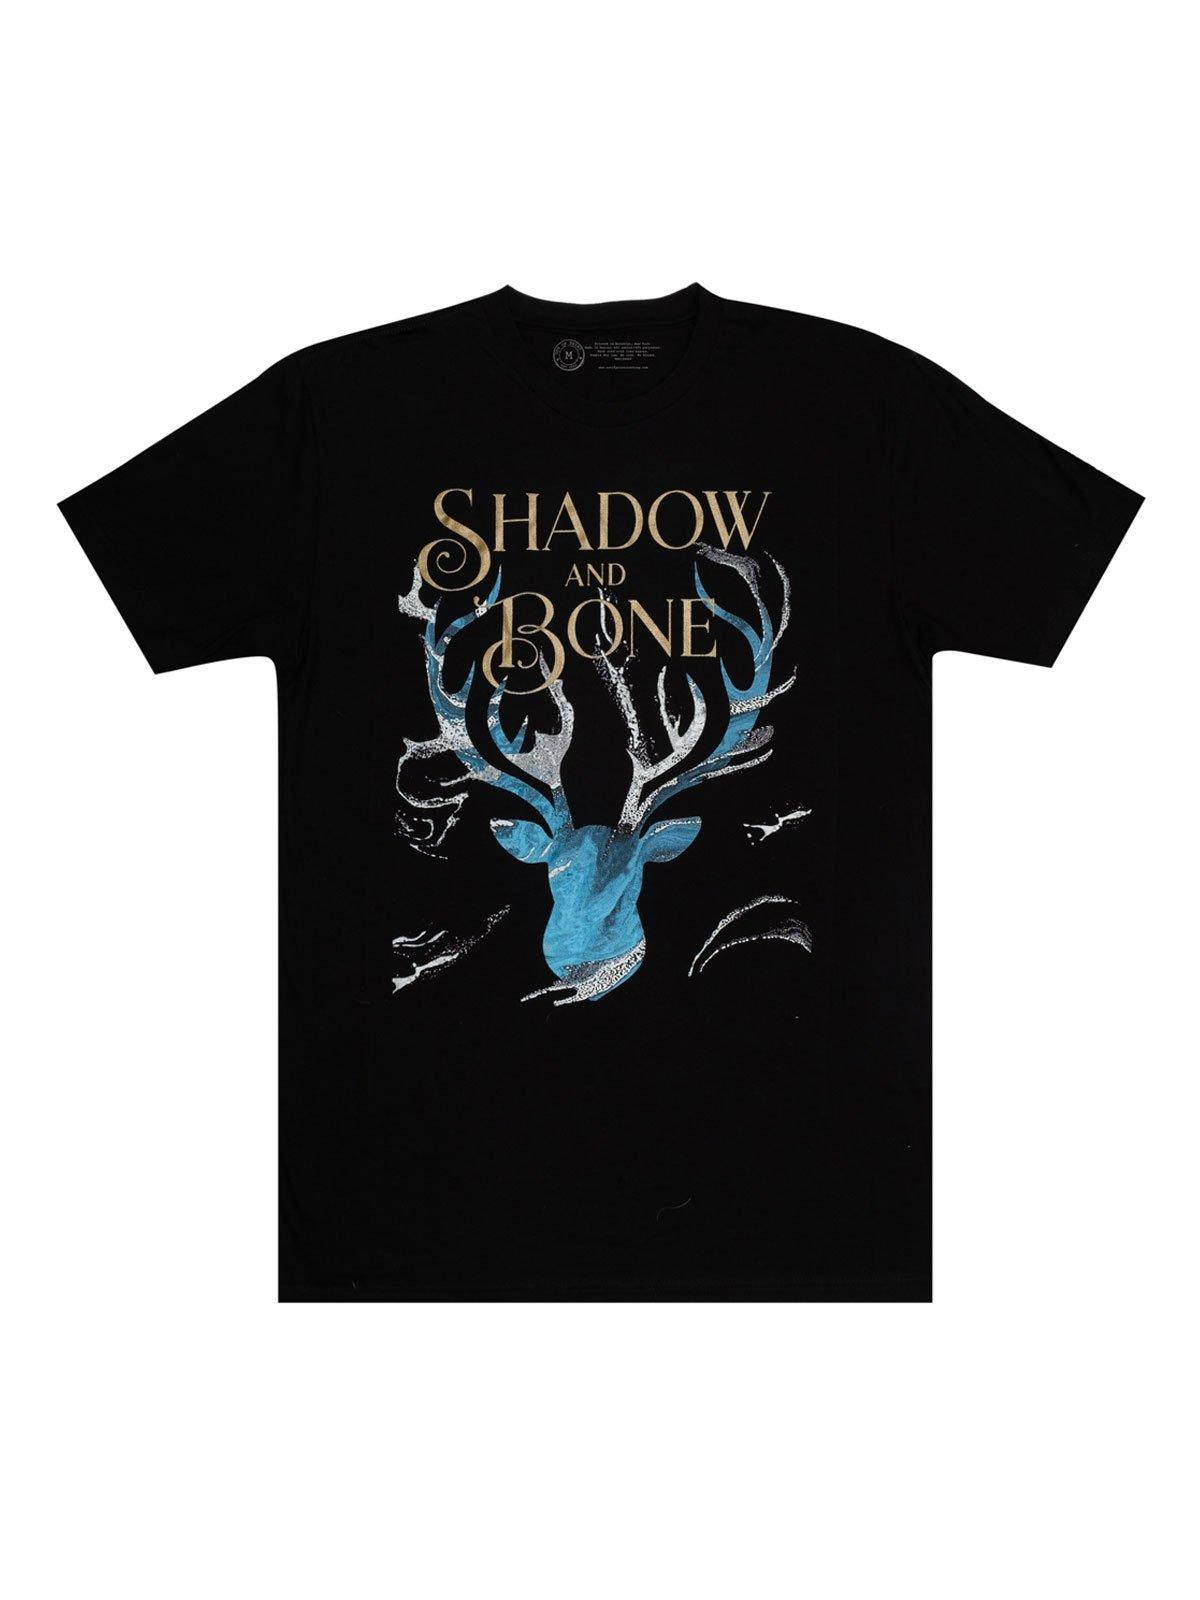 A black crew neck t-shirt with cover art elements from Shadow and Bone by Leigh Bardugo